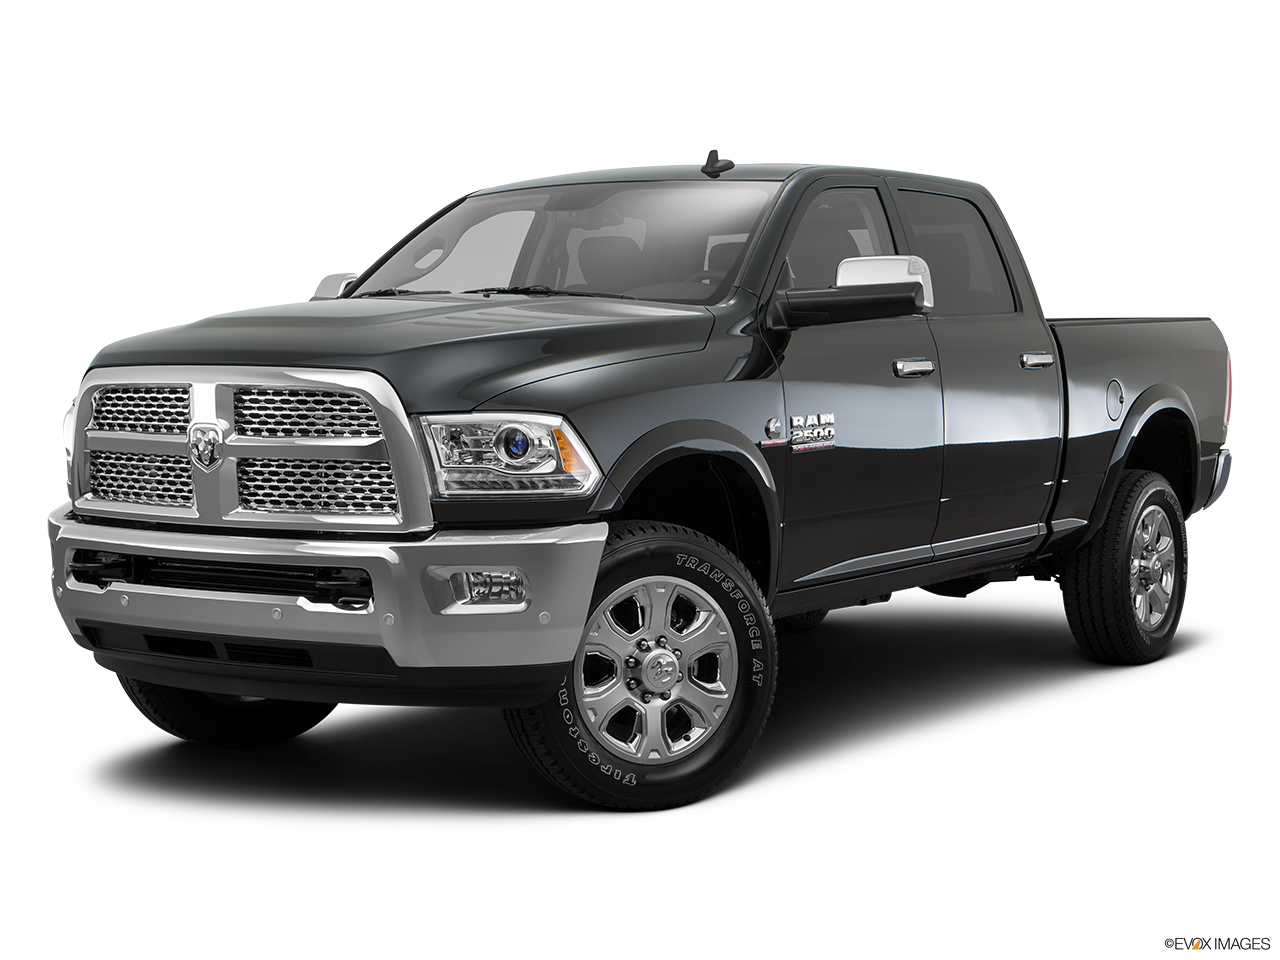 Test Drive A 2016 RAM 2500 at Moss Bros Chrysler Dodge Jeep Ram San Bernardino in San Bernardino